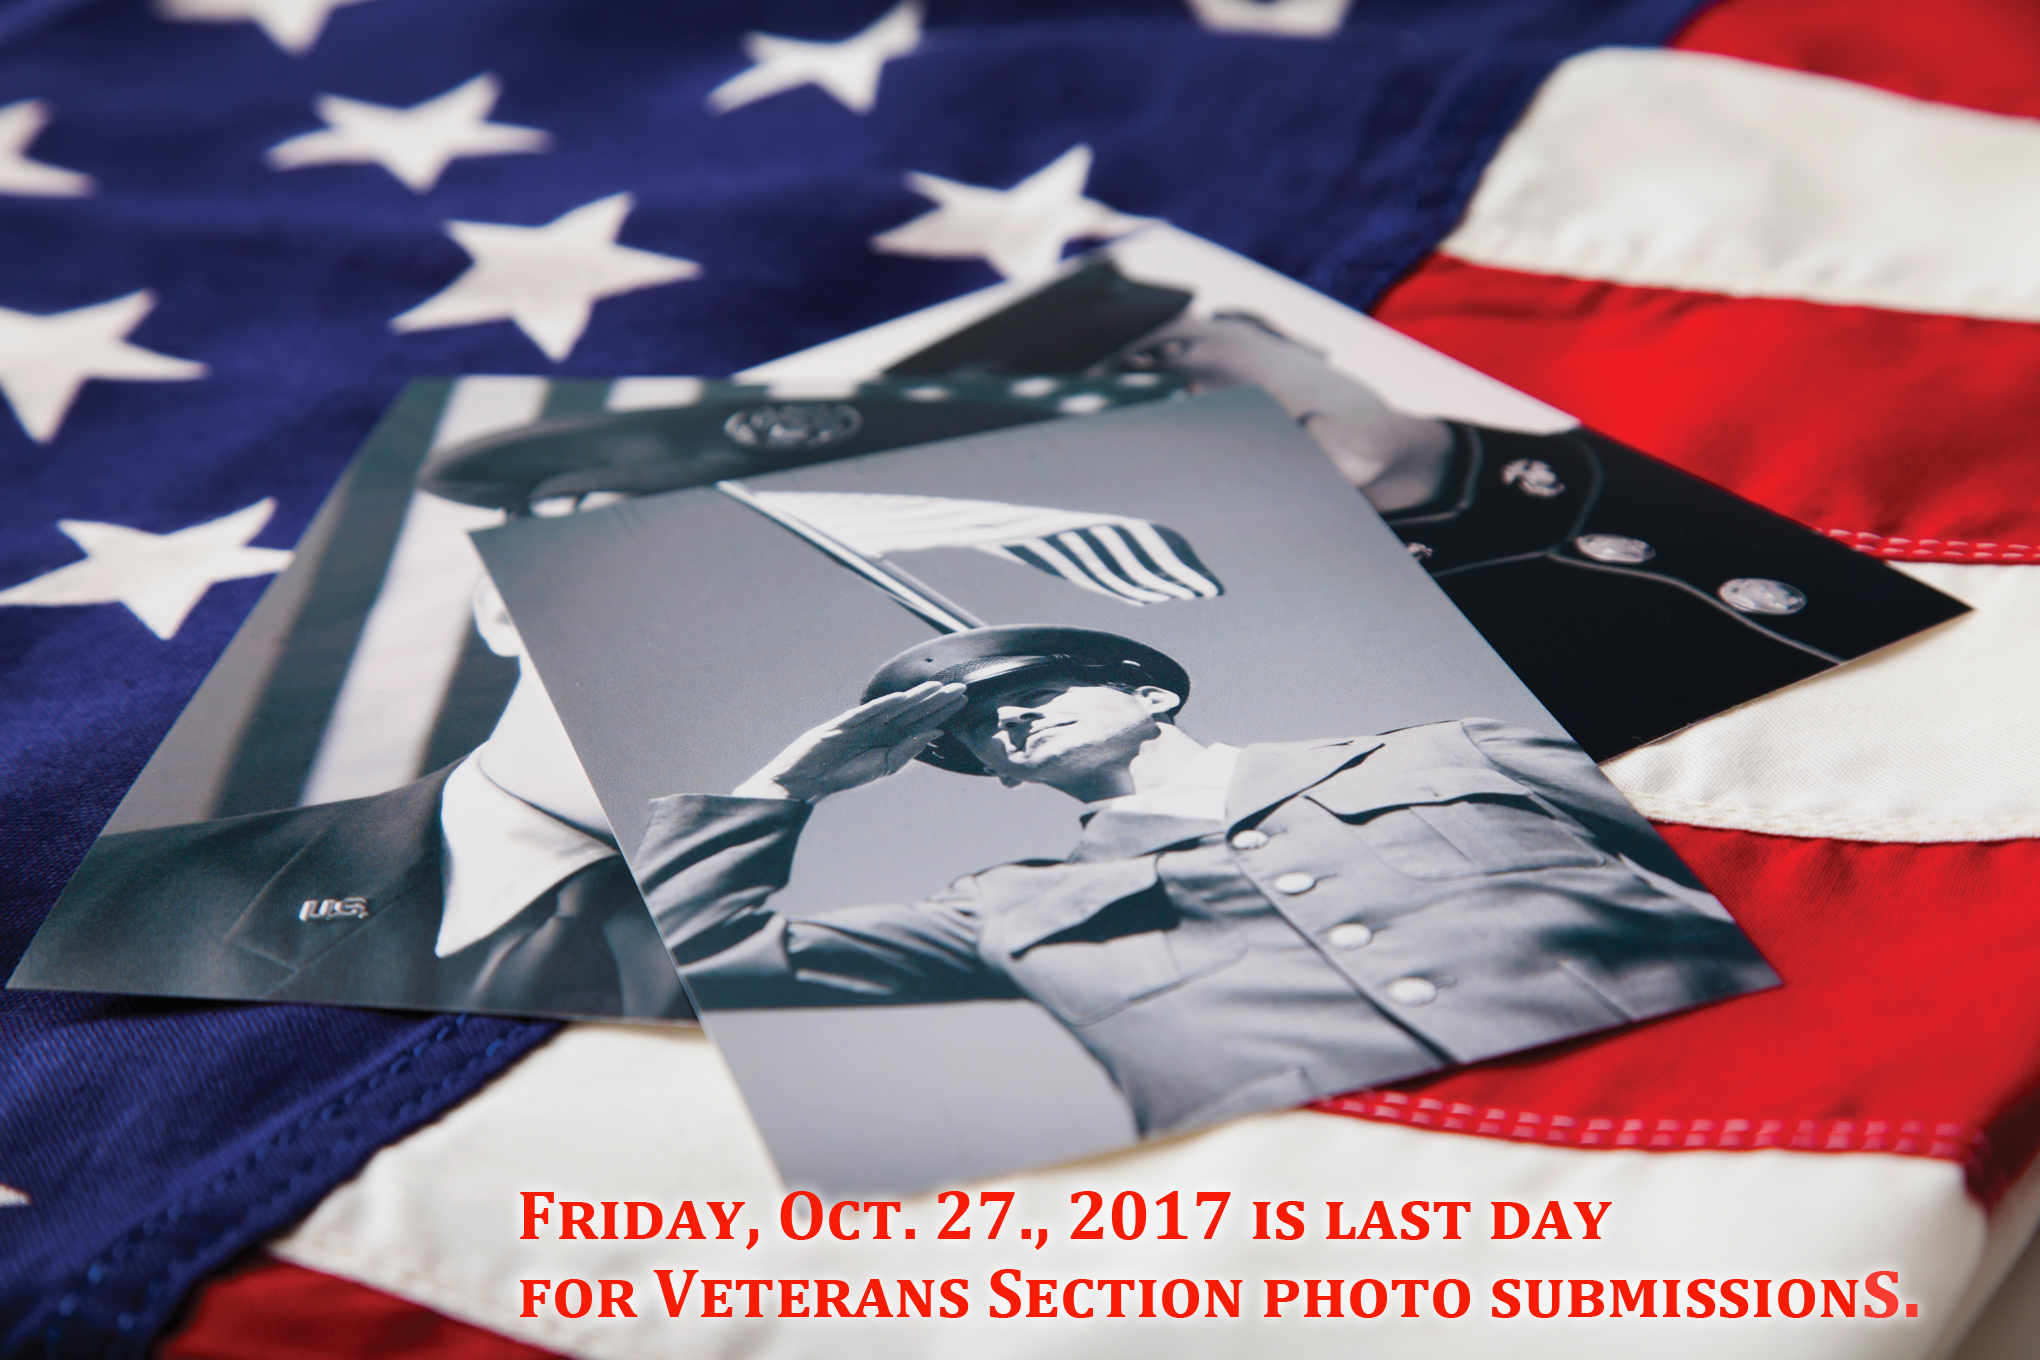 Veteran Section photo submissions due by Friday